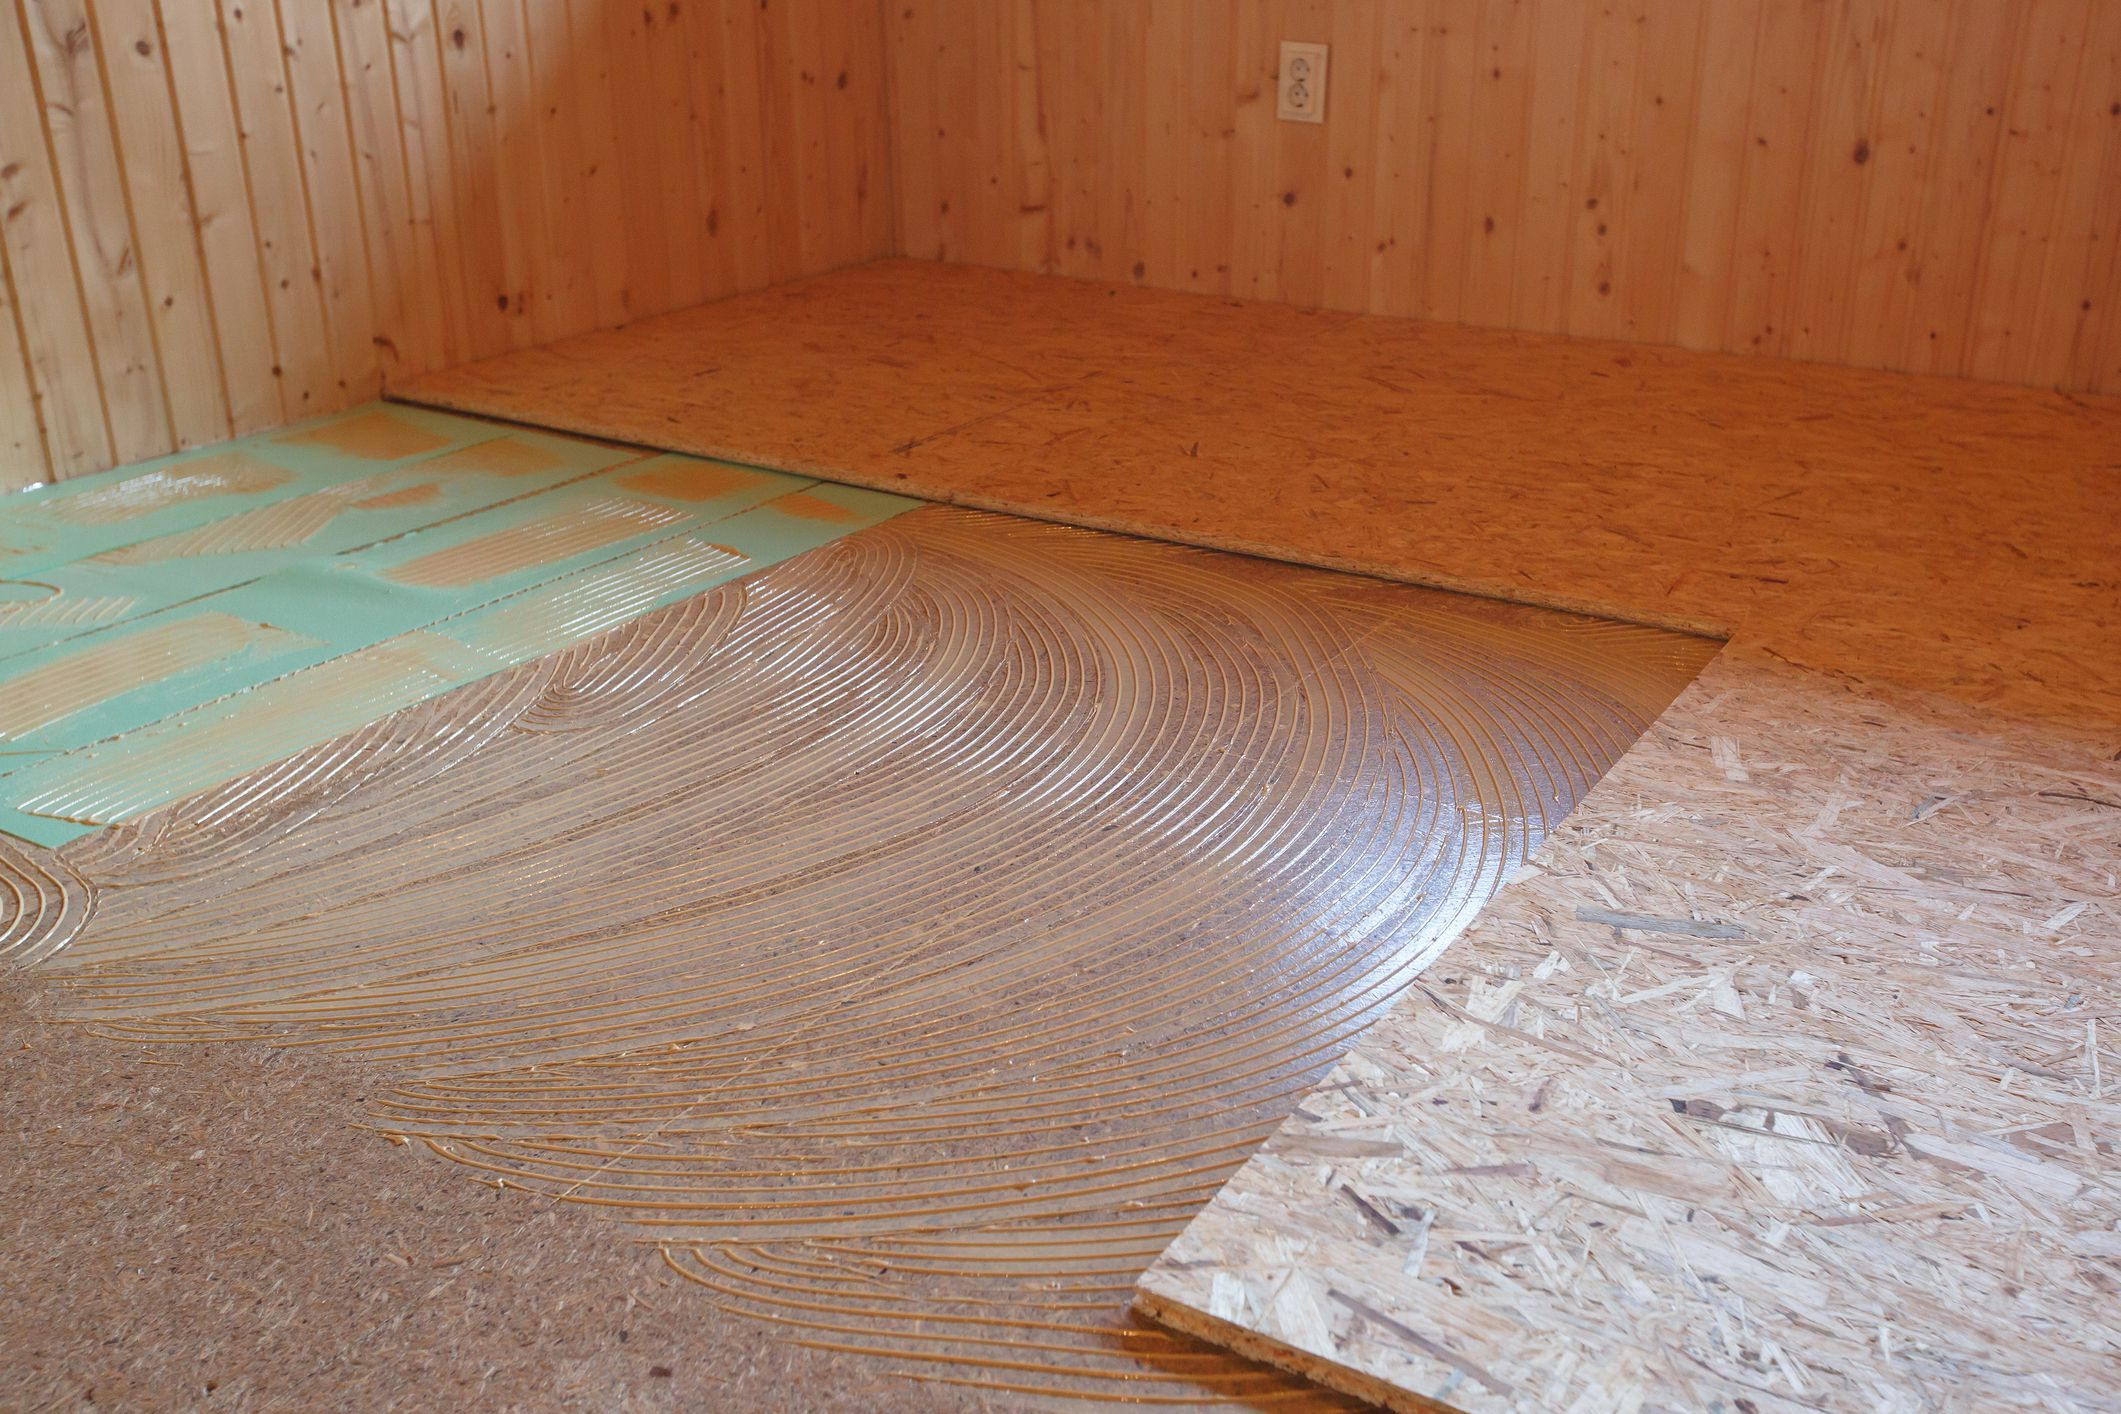 how do you install hardwood floors on concrete of types of subfloor materials in construction projects with gettyimages 892047030 5af5f46fc064710036eebd22